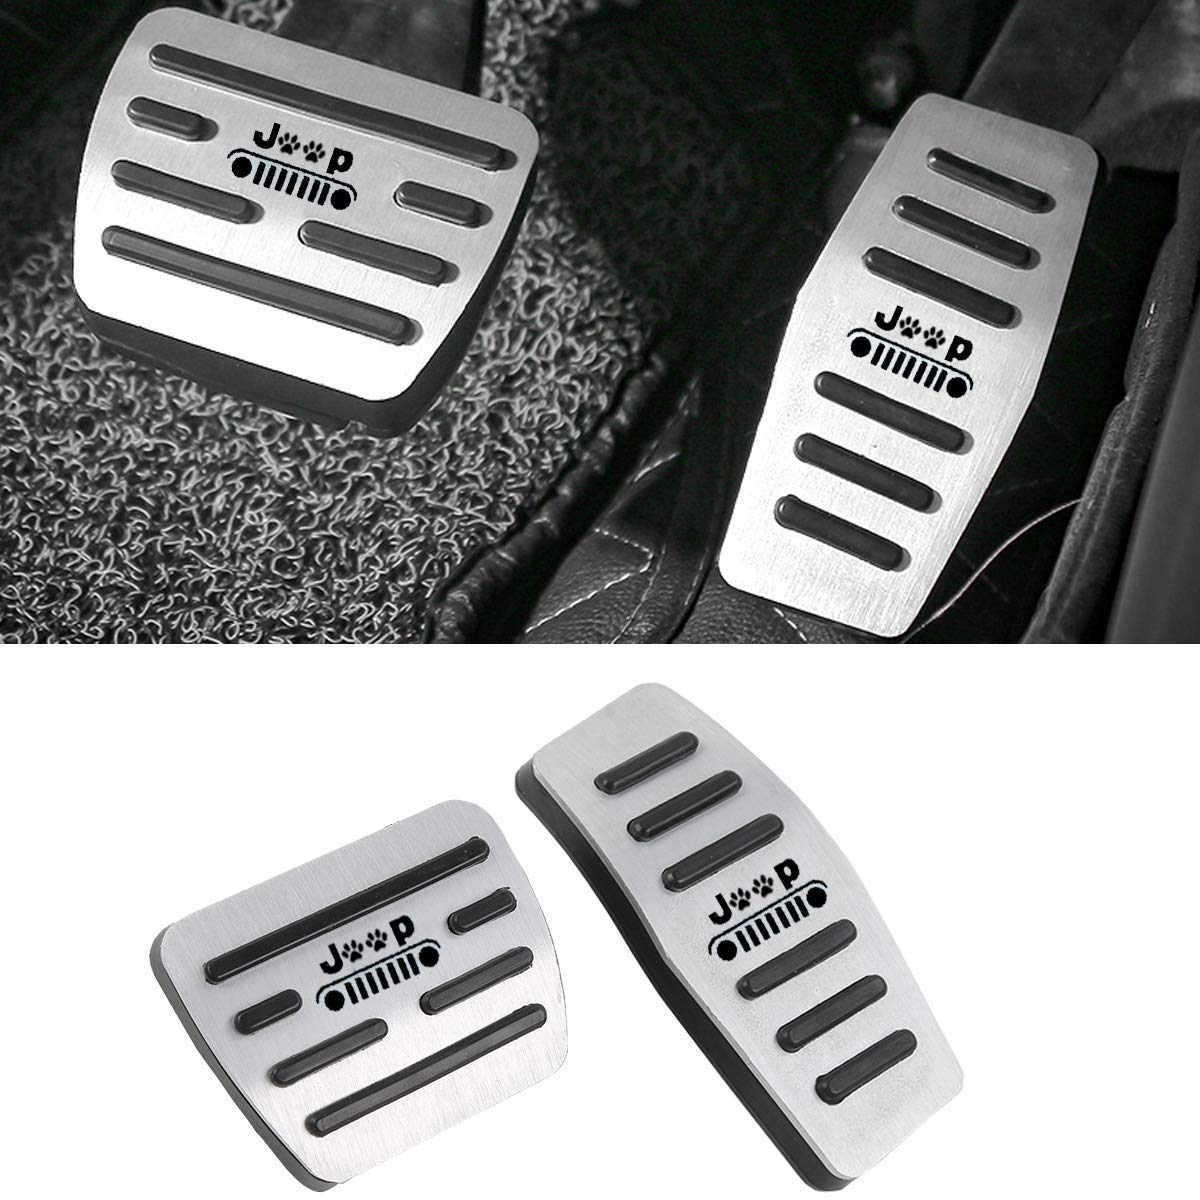 Aluminum Alloy Anti-Slip Gas Pedal Cover Break Pedal Pad at Accelerator Pedal Covers for Ford F150 2019 Jaronx No Drill Pedal Covers for Ford F150 2PC Set